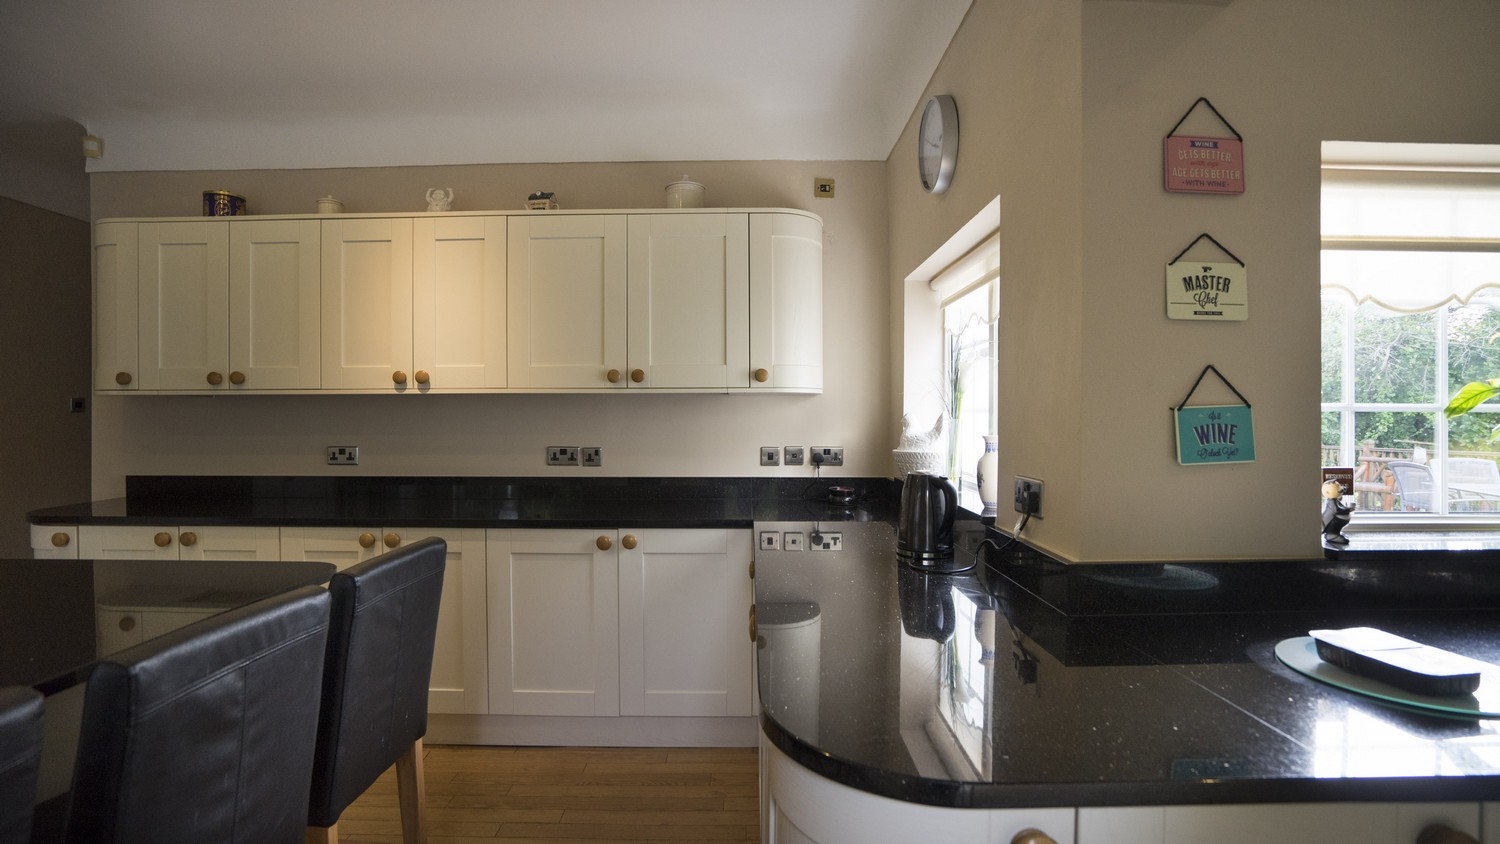 The corners of the worktops have been rounded to create a smooth flow throughout the kitchen and improve the space in these often awkward areas.